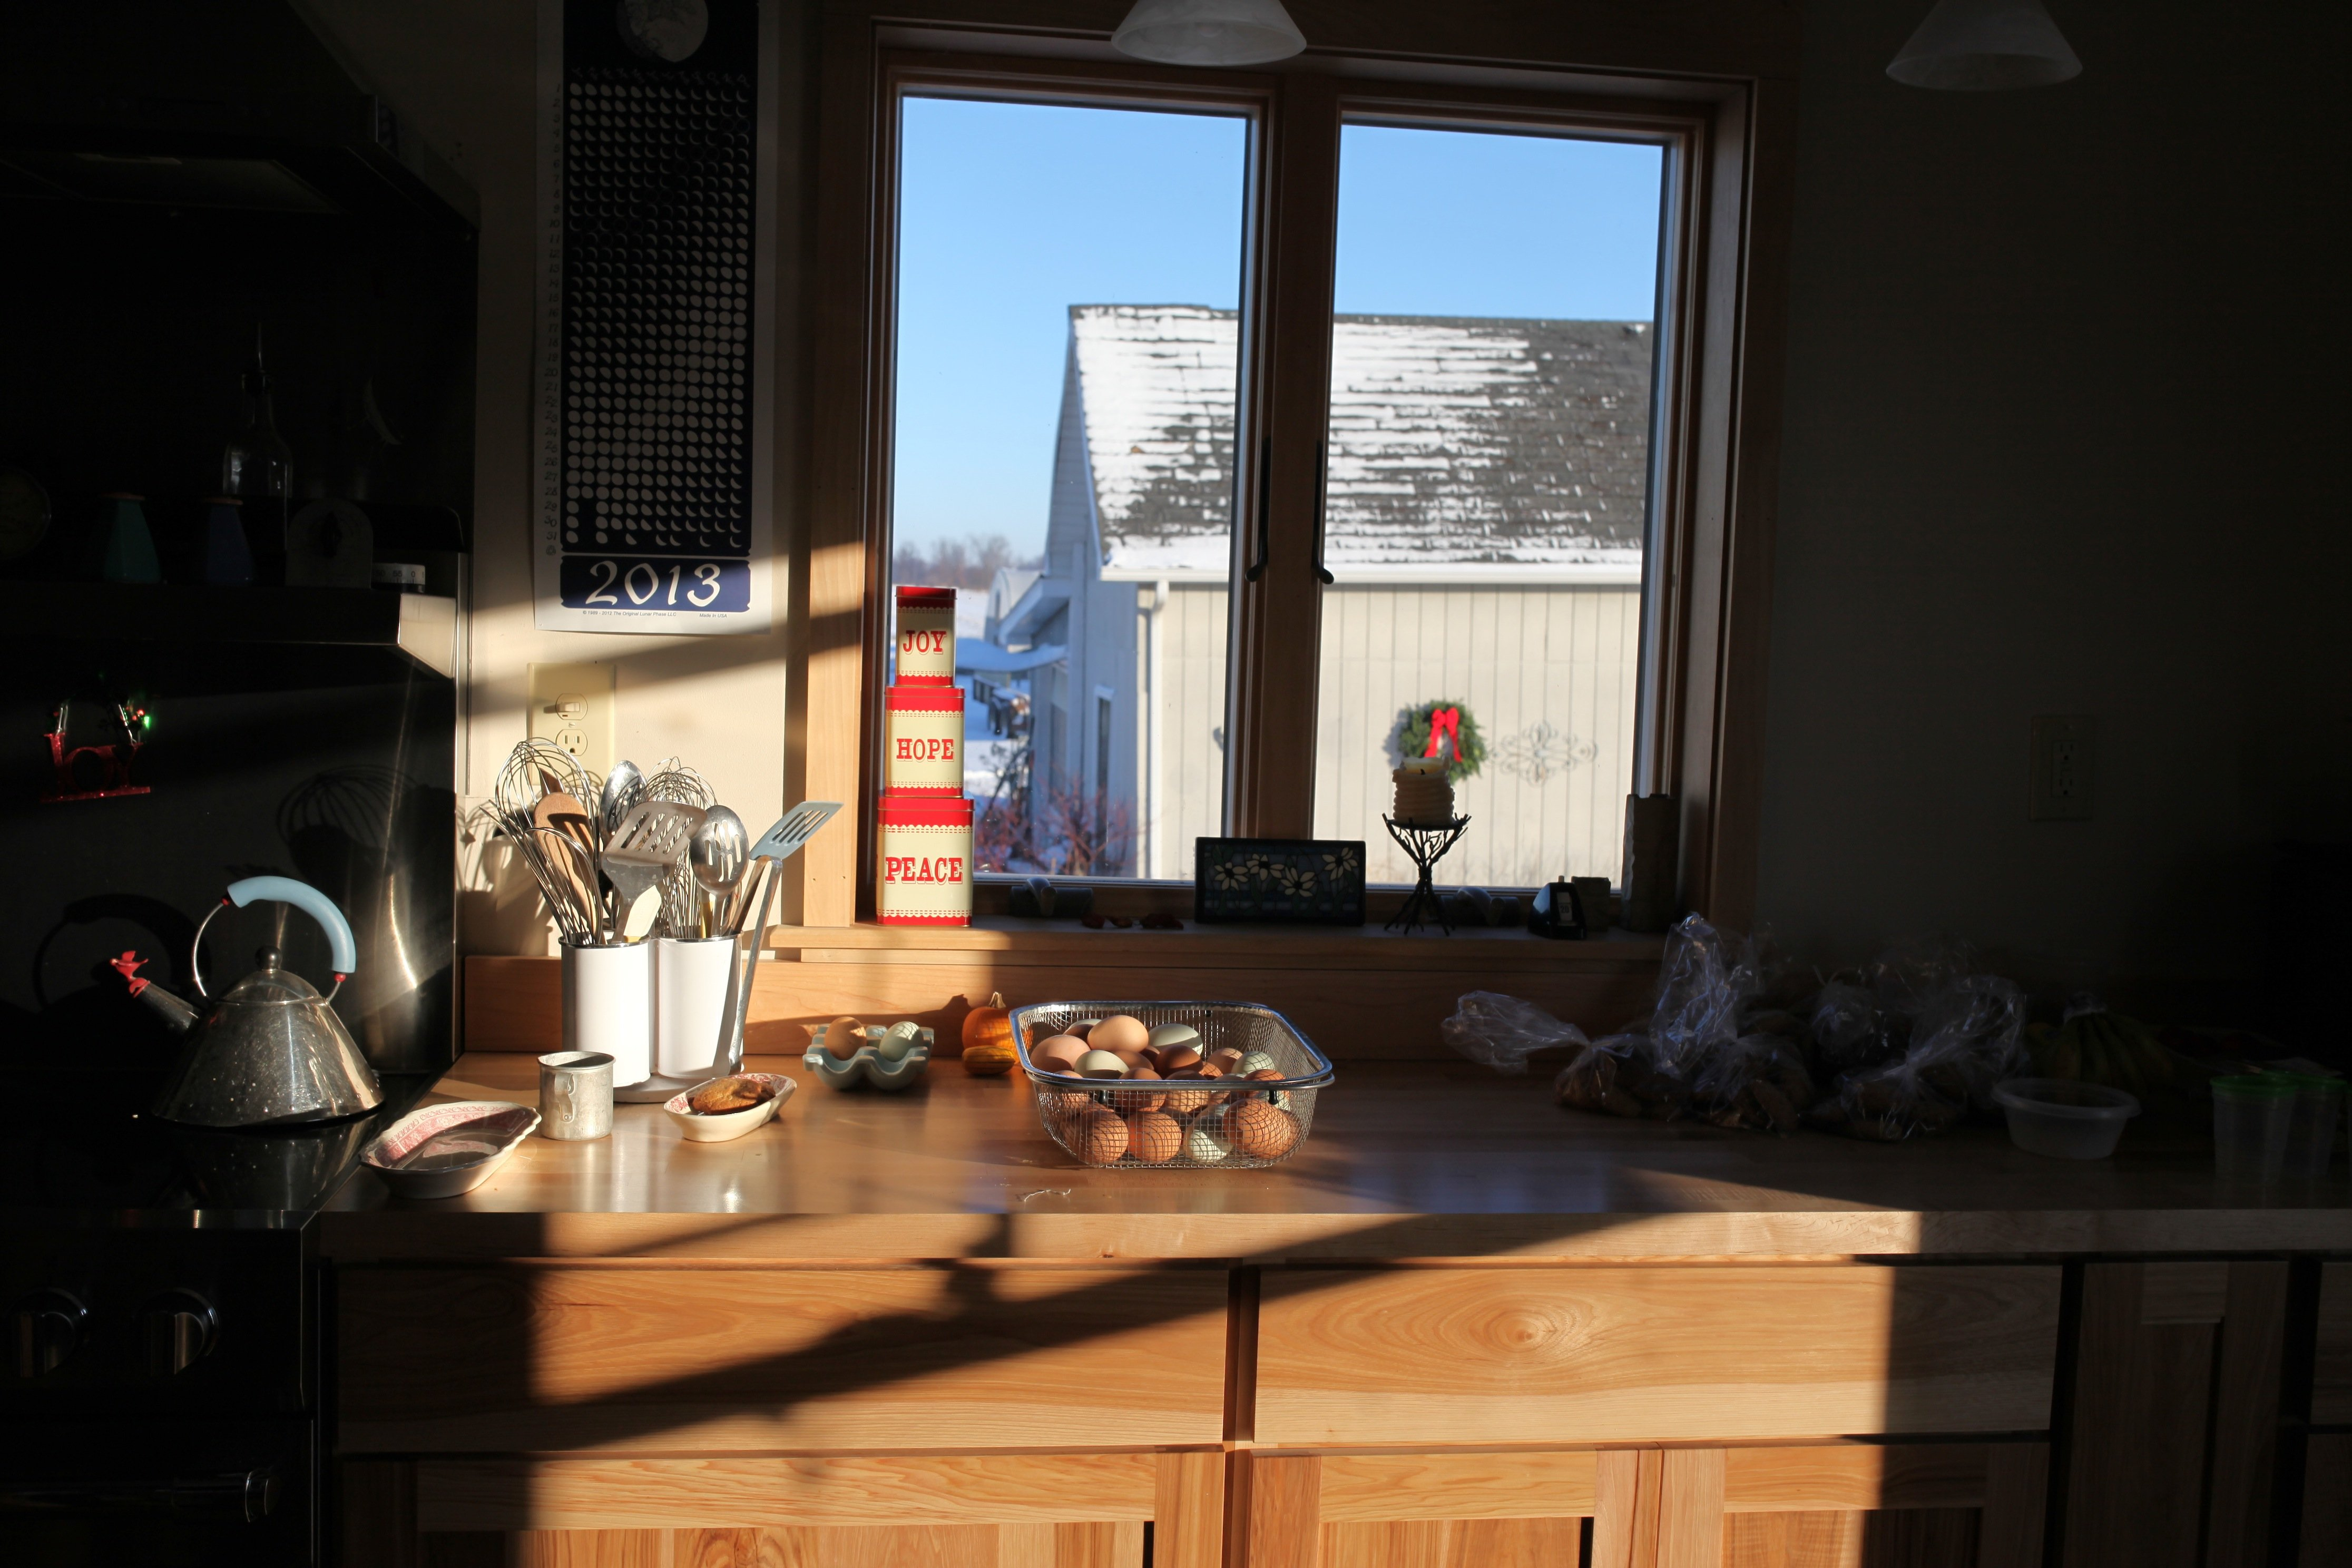 Out the kitchen window w: light